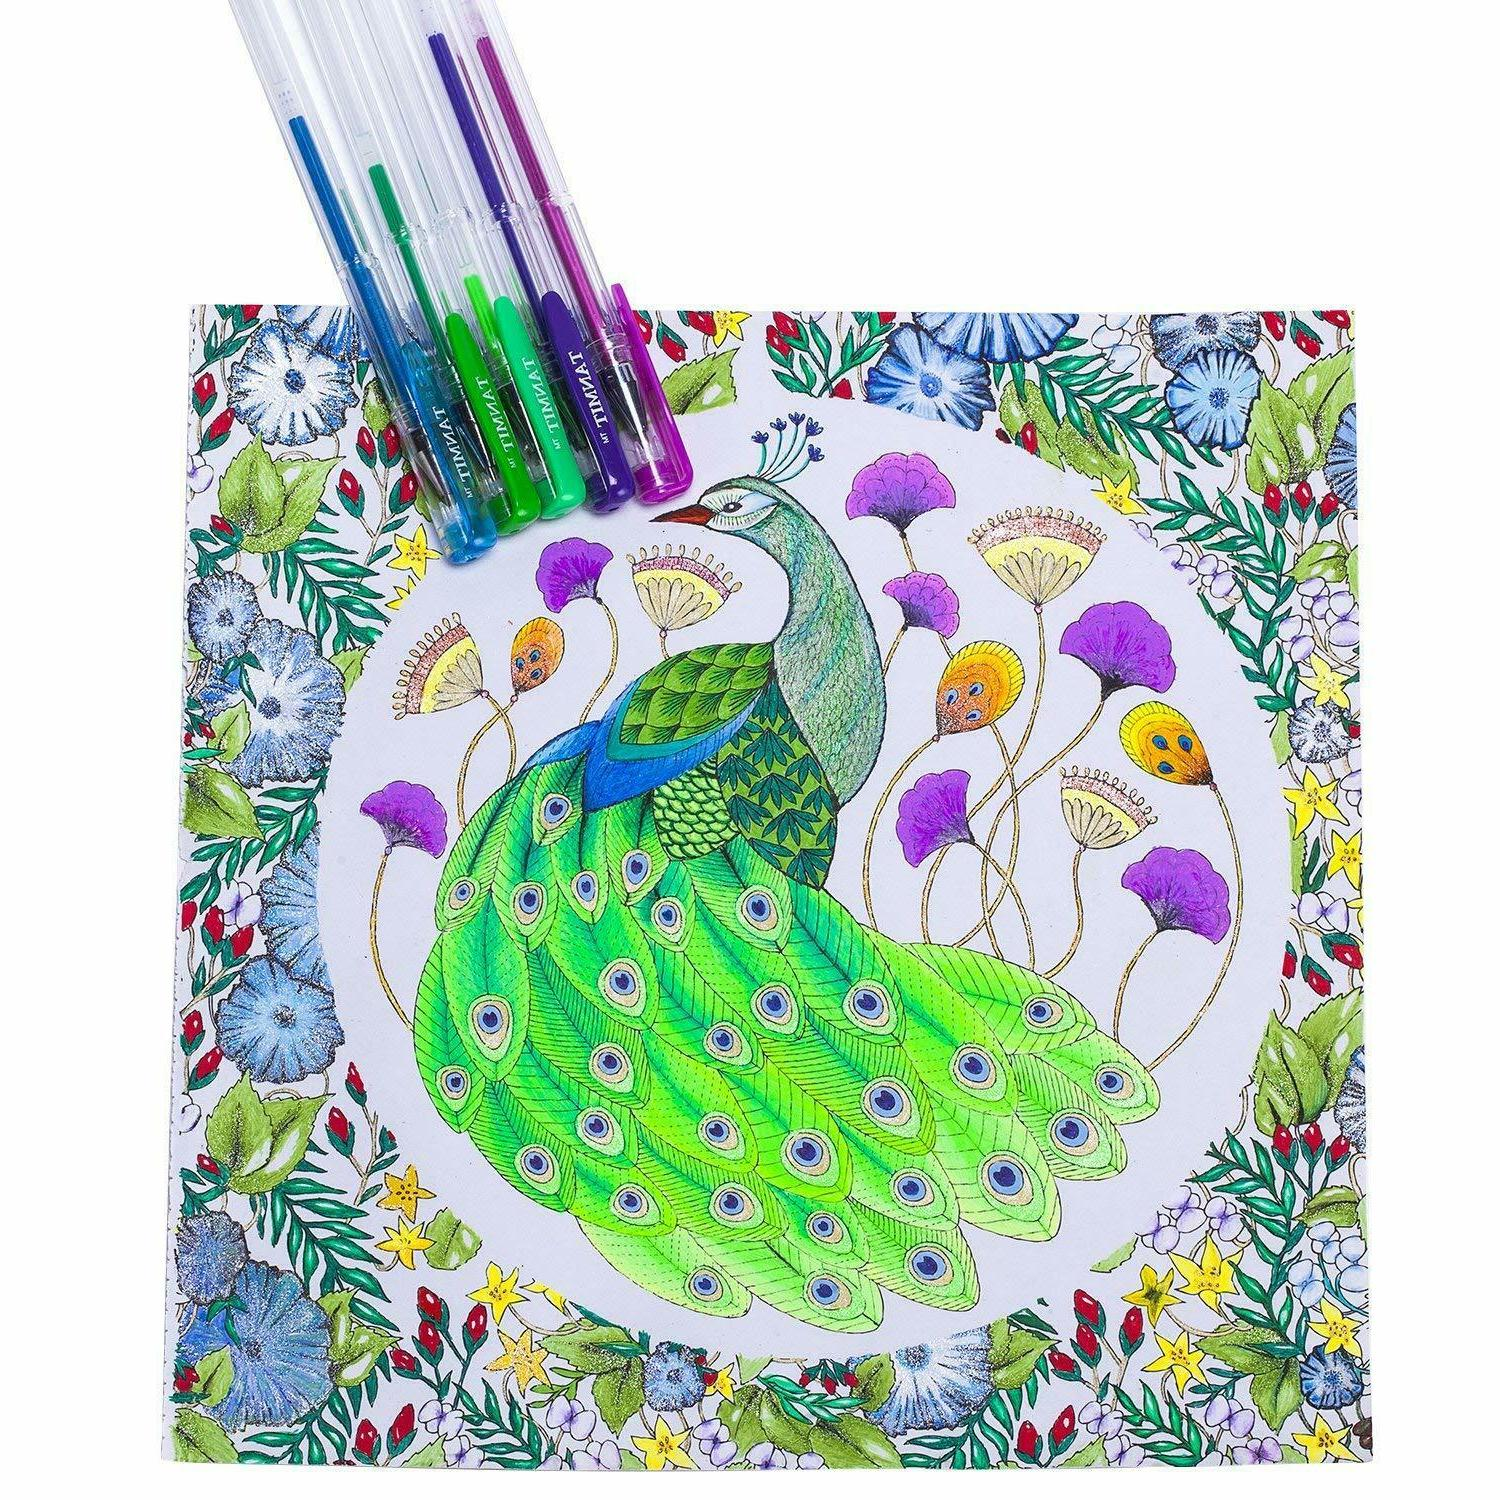 M280240 Pens Set for Adults Coloring Drawing Markers